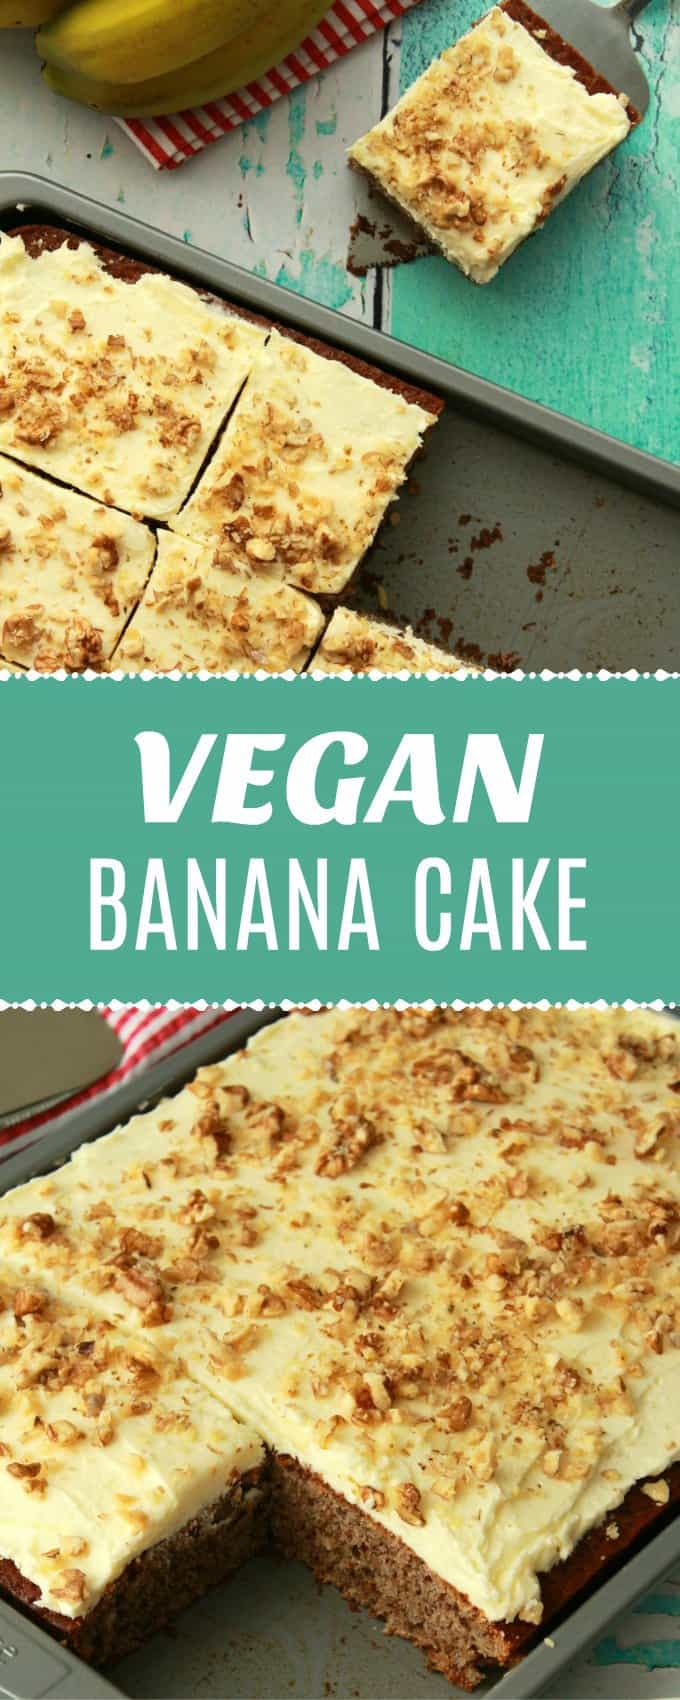 Perfectly moist, light and fluffy vegan banana cake loaded with banana flavor and topped with a delicious lemon frosting. Can be made as a sheet cake or a layer cake. #vegan #dairyfree | lovingitvegan.com